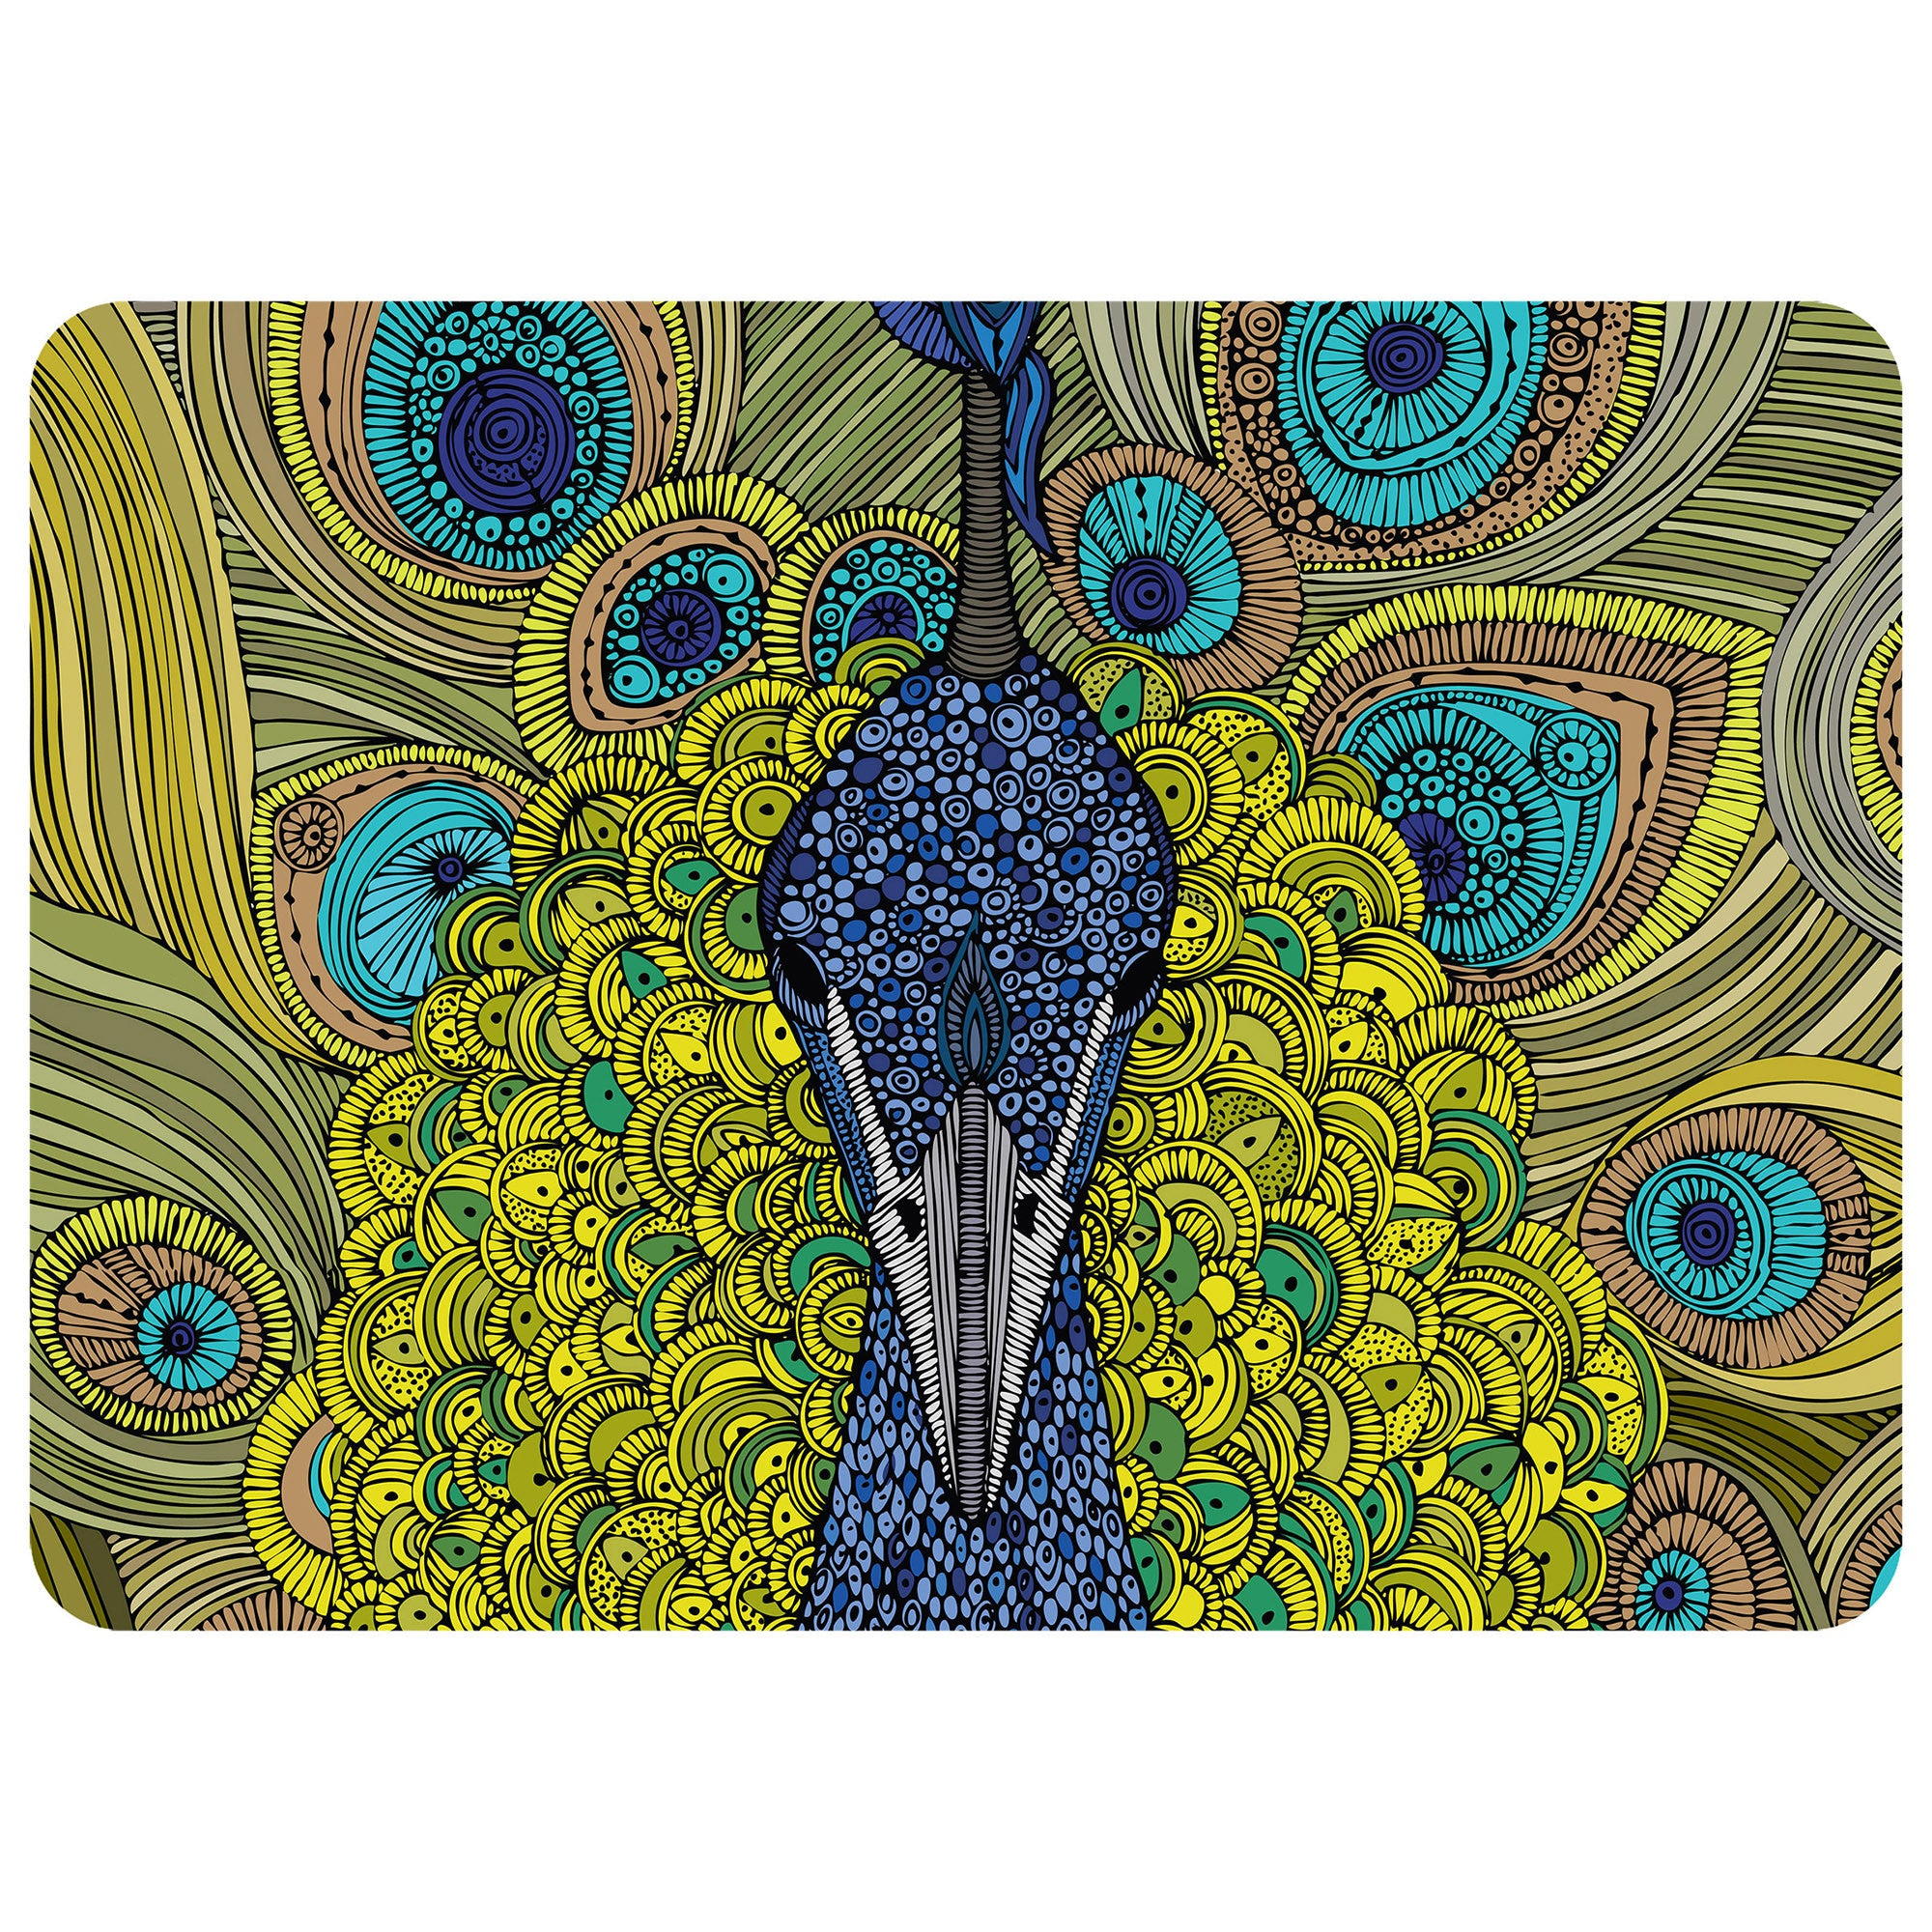 "The Peacock 23""x36"" Accent Mat by Valentina"